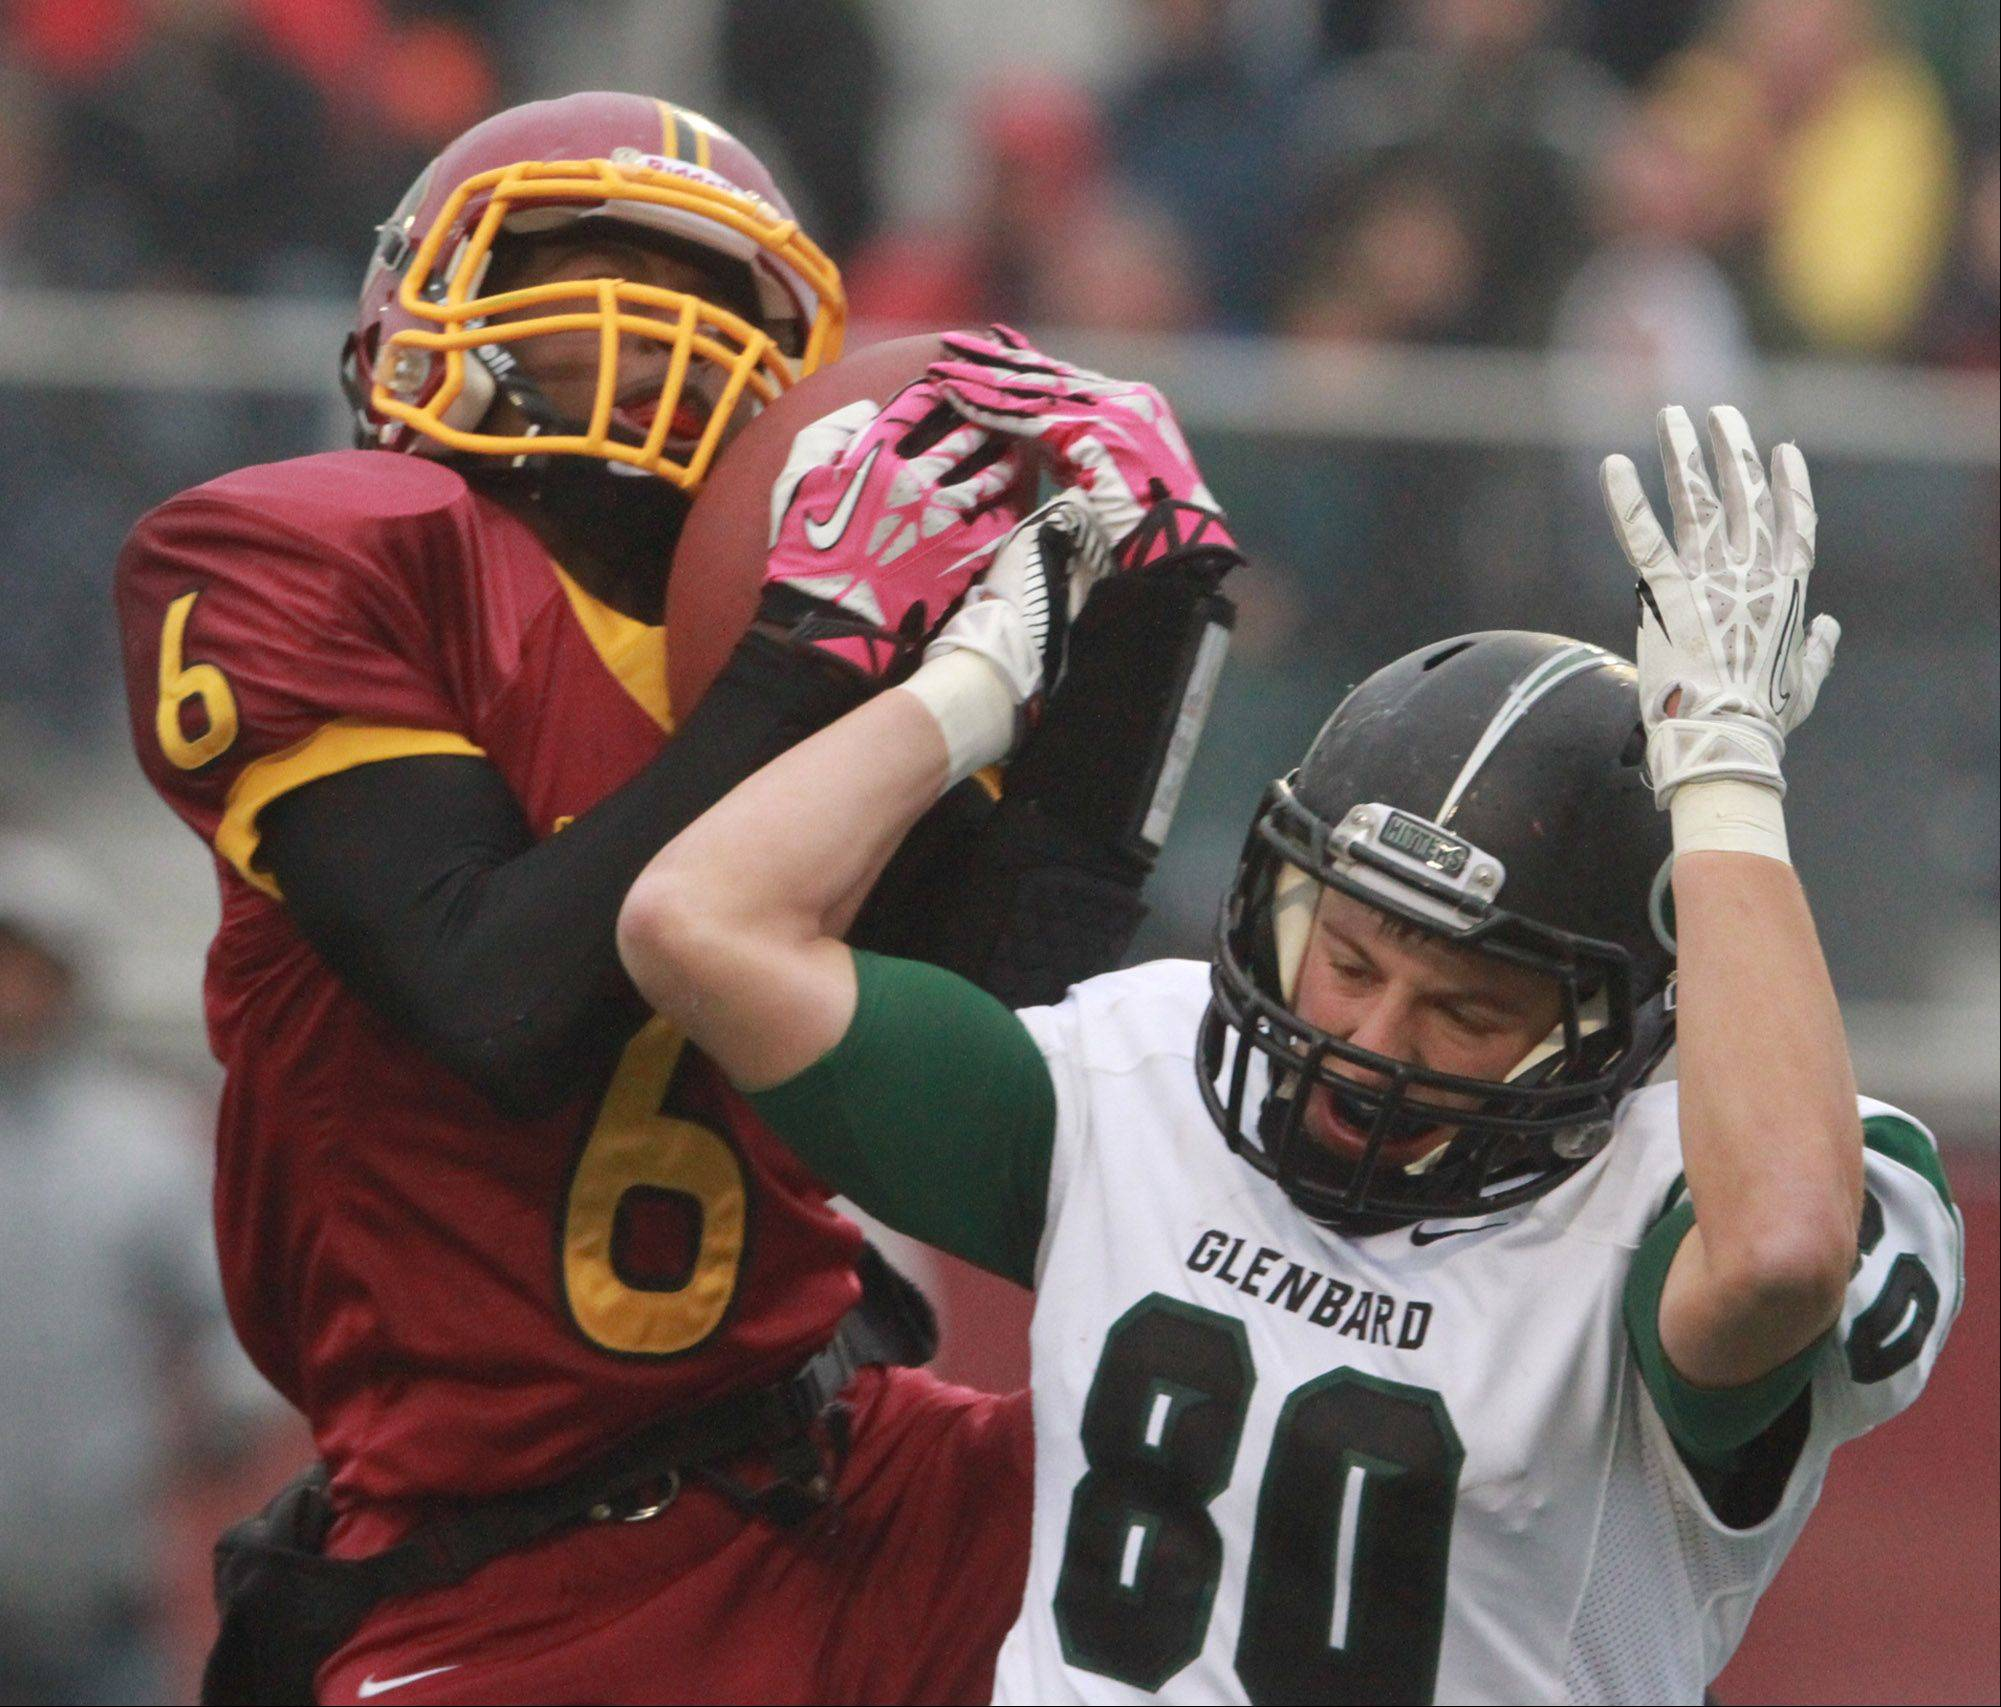 Schaumburg defensive back Shandall Thomas intercepts a pass intended for Glenbard West receiver Luke Damask in a quarterfinal playoff game on Saturday in Schaumburg.